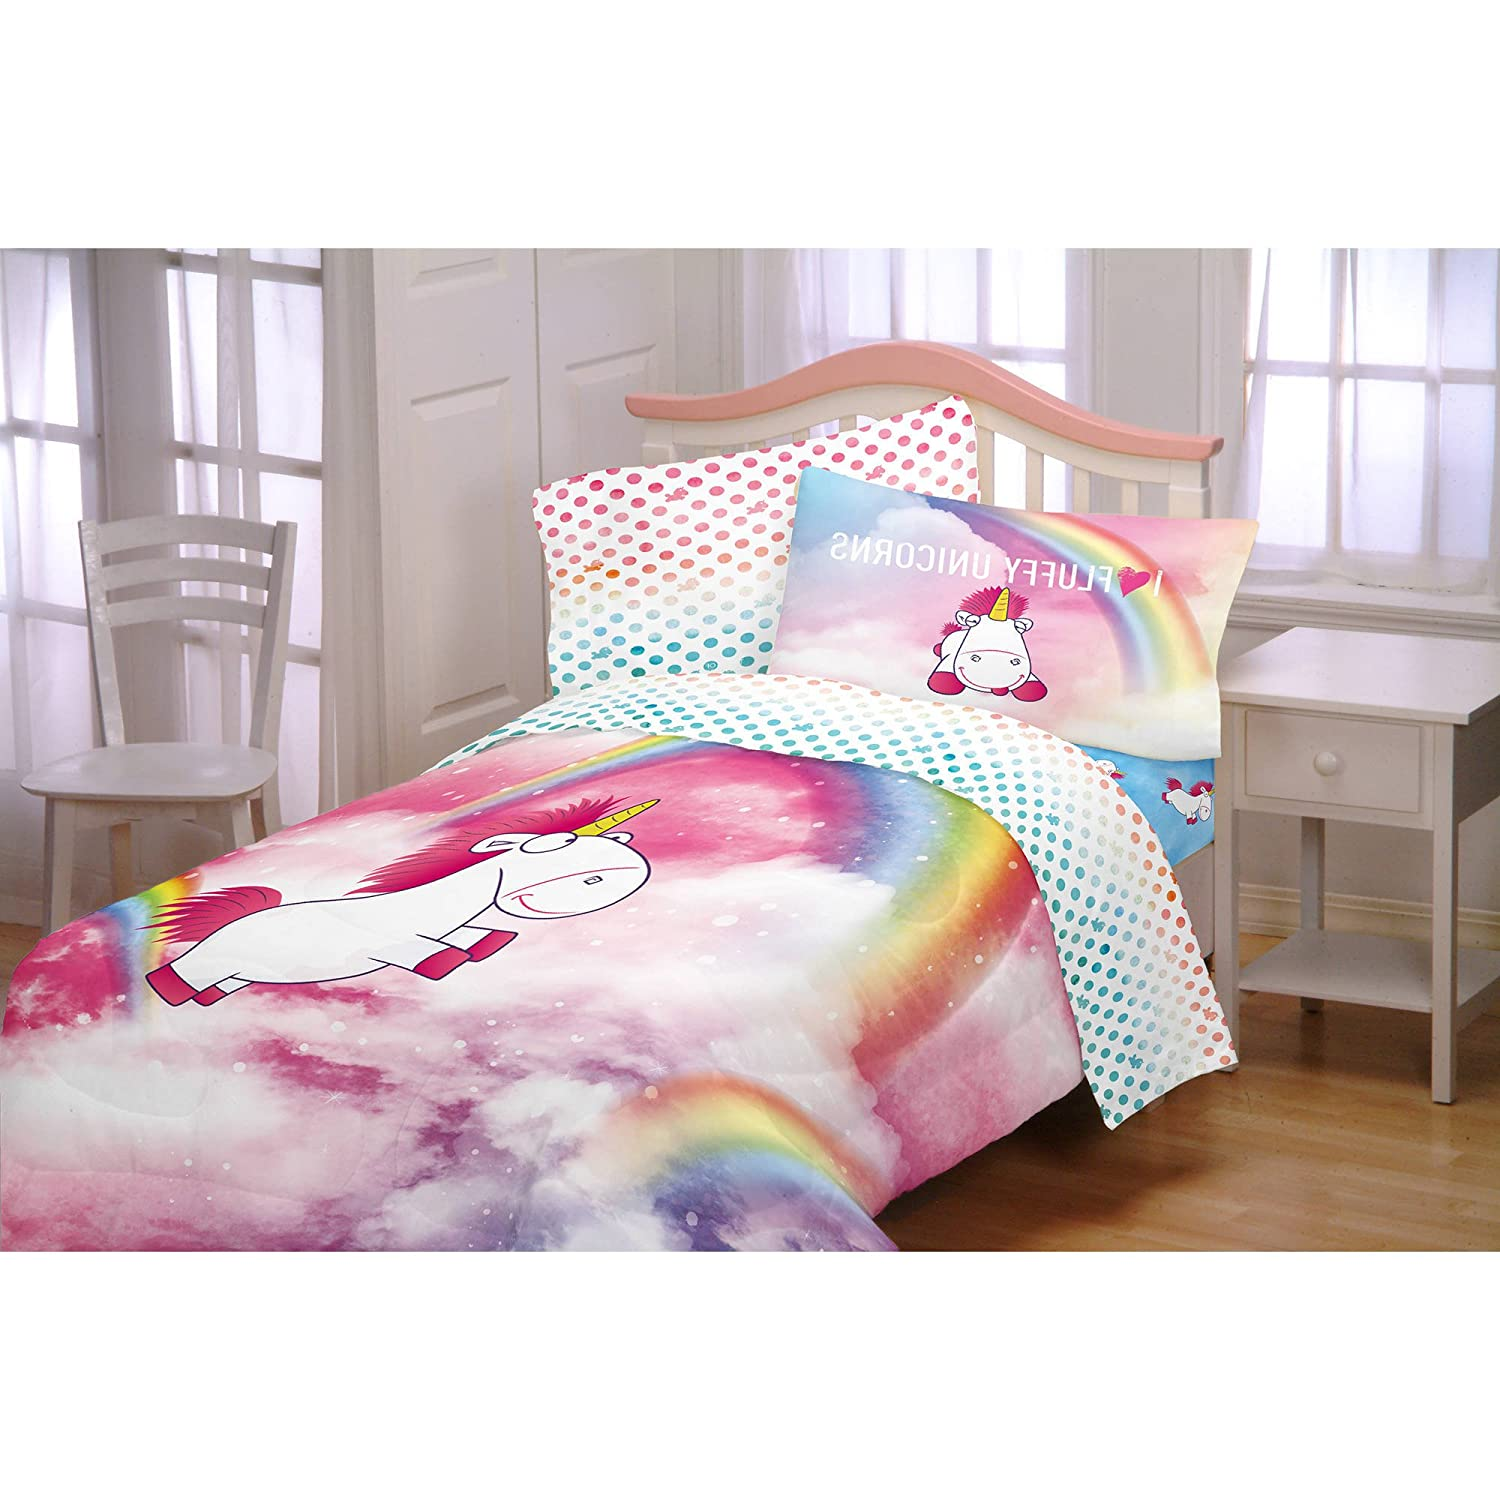 1 Piece Kids Girls Pink White Unicorns Comforter Twin Full, Blue Rainbows Unicorn Bedding Magical Ponies Despicable Me Minons Movie Themed White Horned Horse Cute Hearts Print Vibrant Colors Polyester